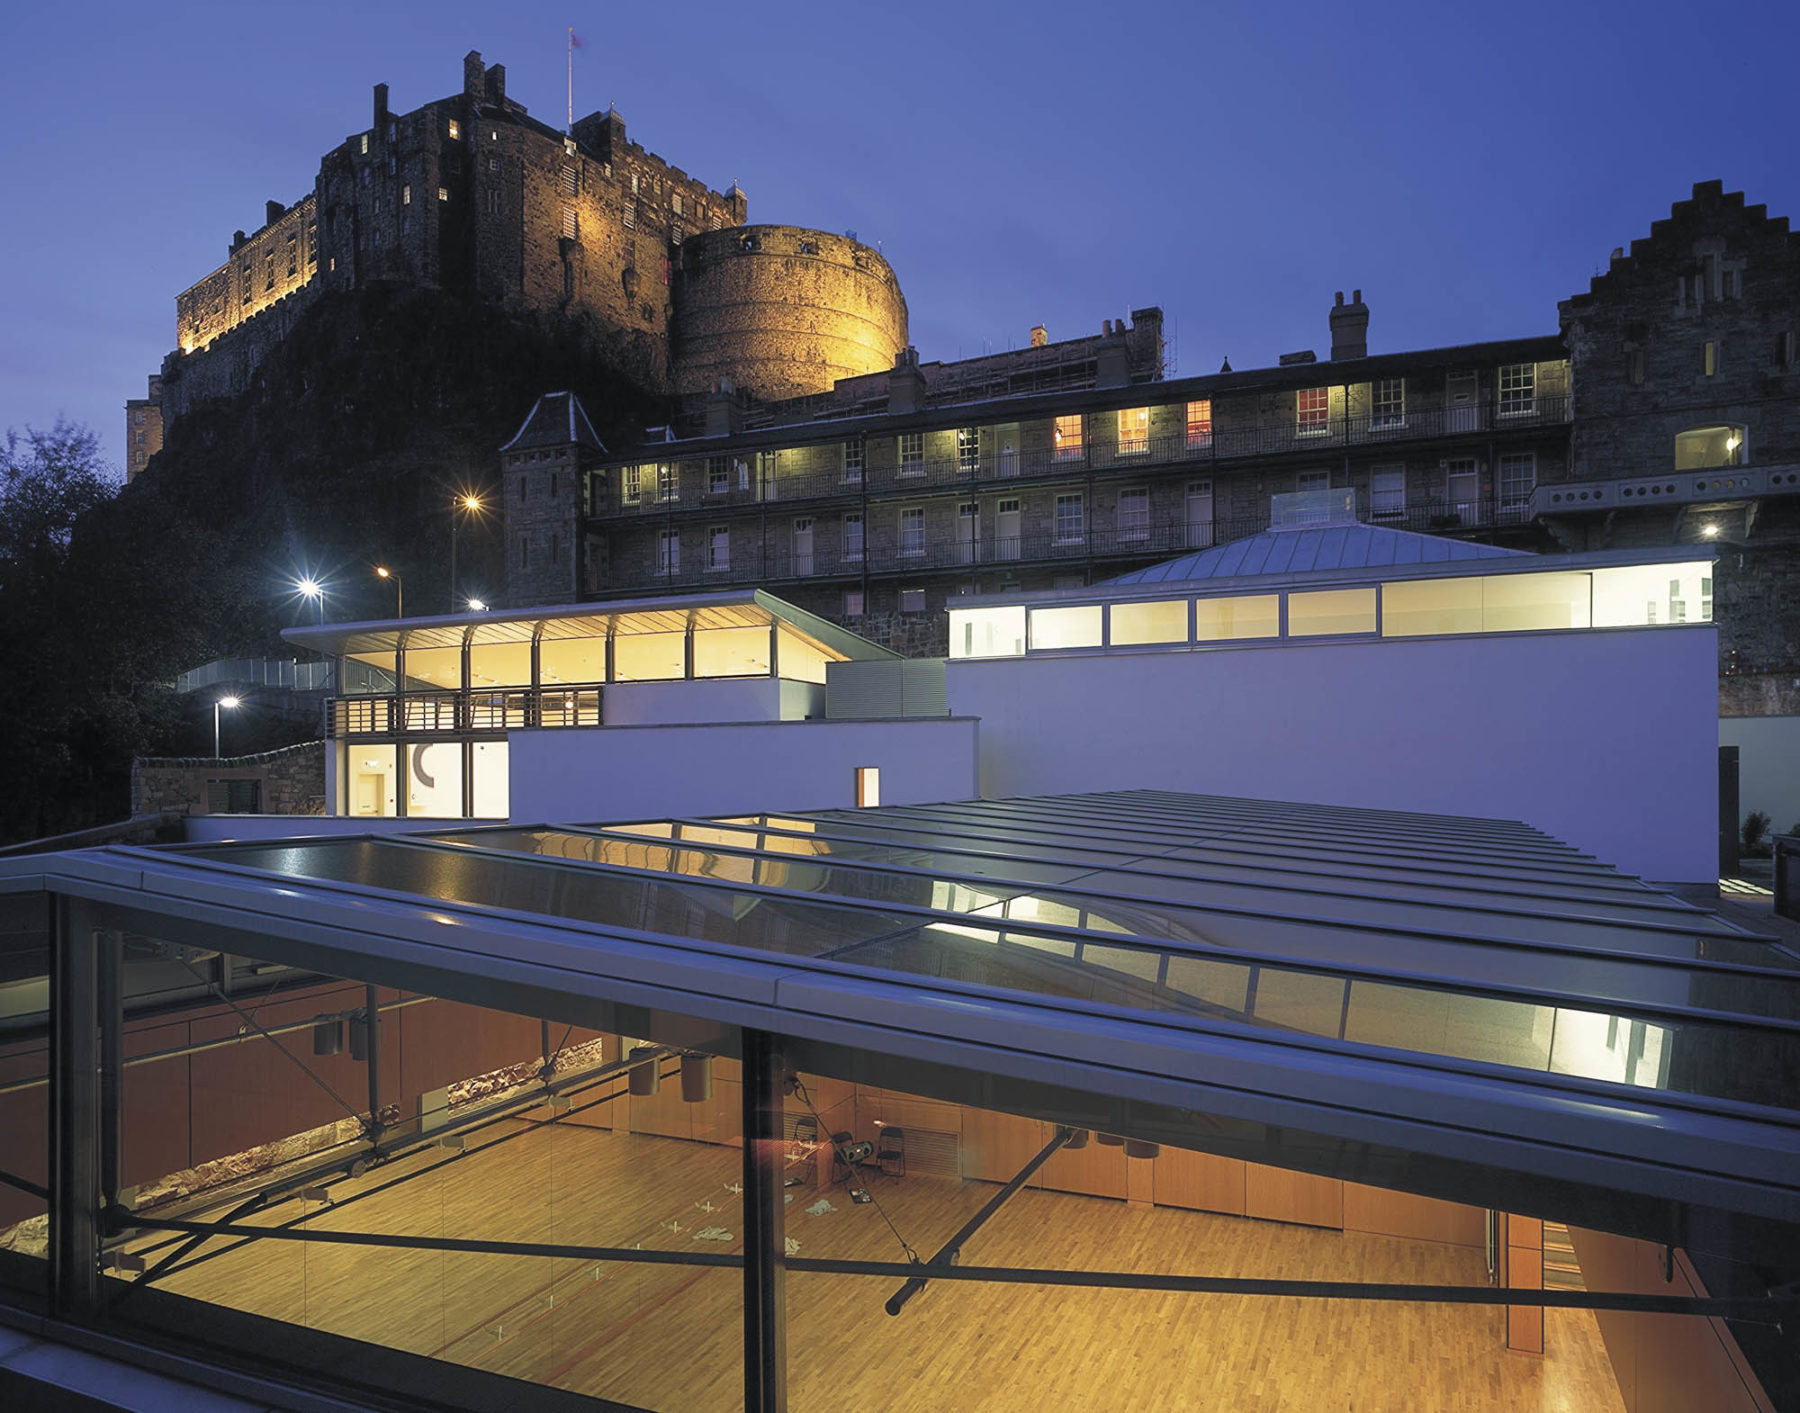 Dance Base , Edinburgh with Edinburgh Castle